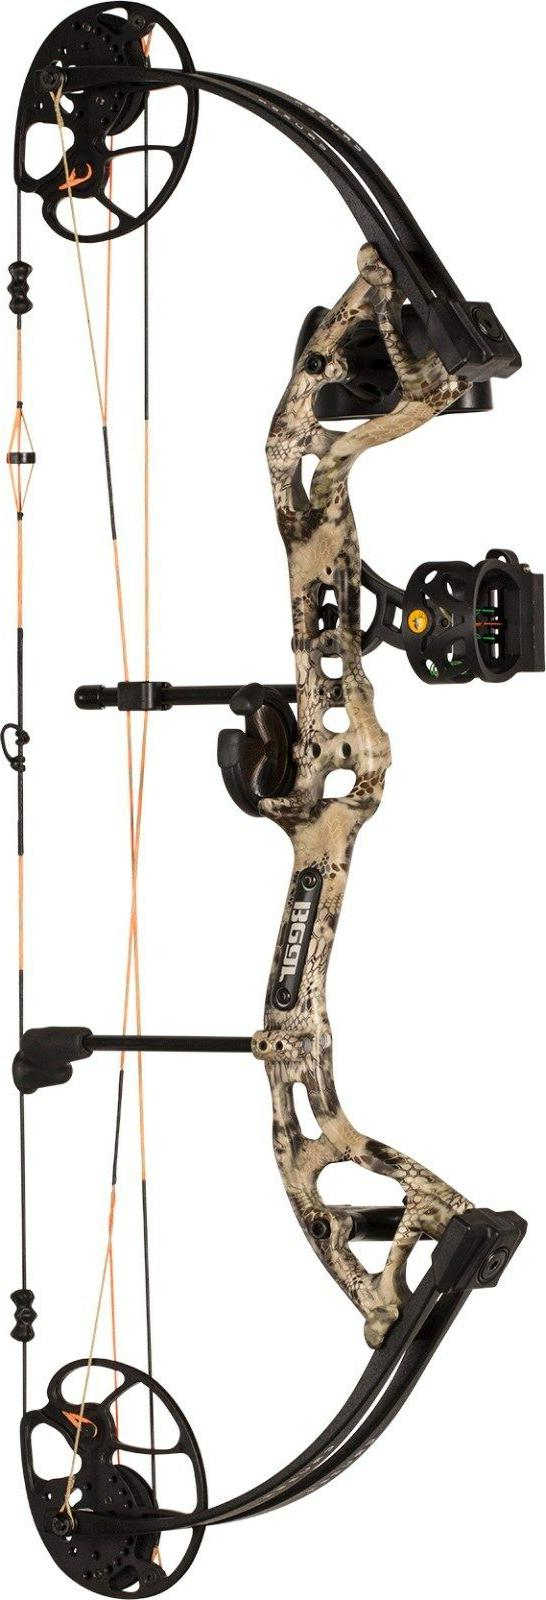 Bear Archery New 2018 Species Rth Compound Bow 70# Left Hand